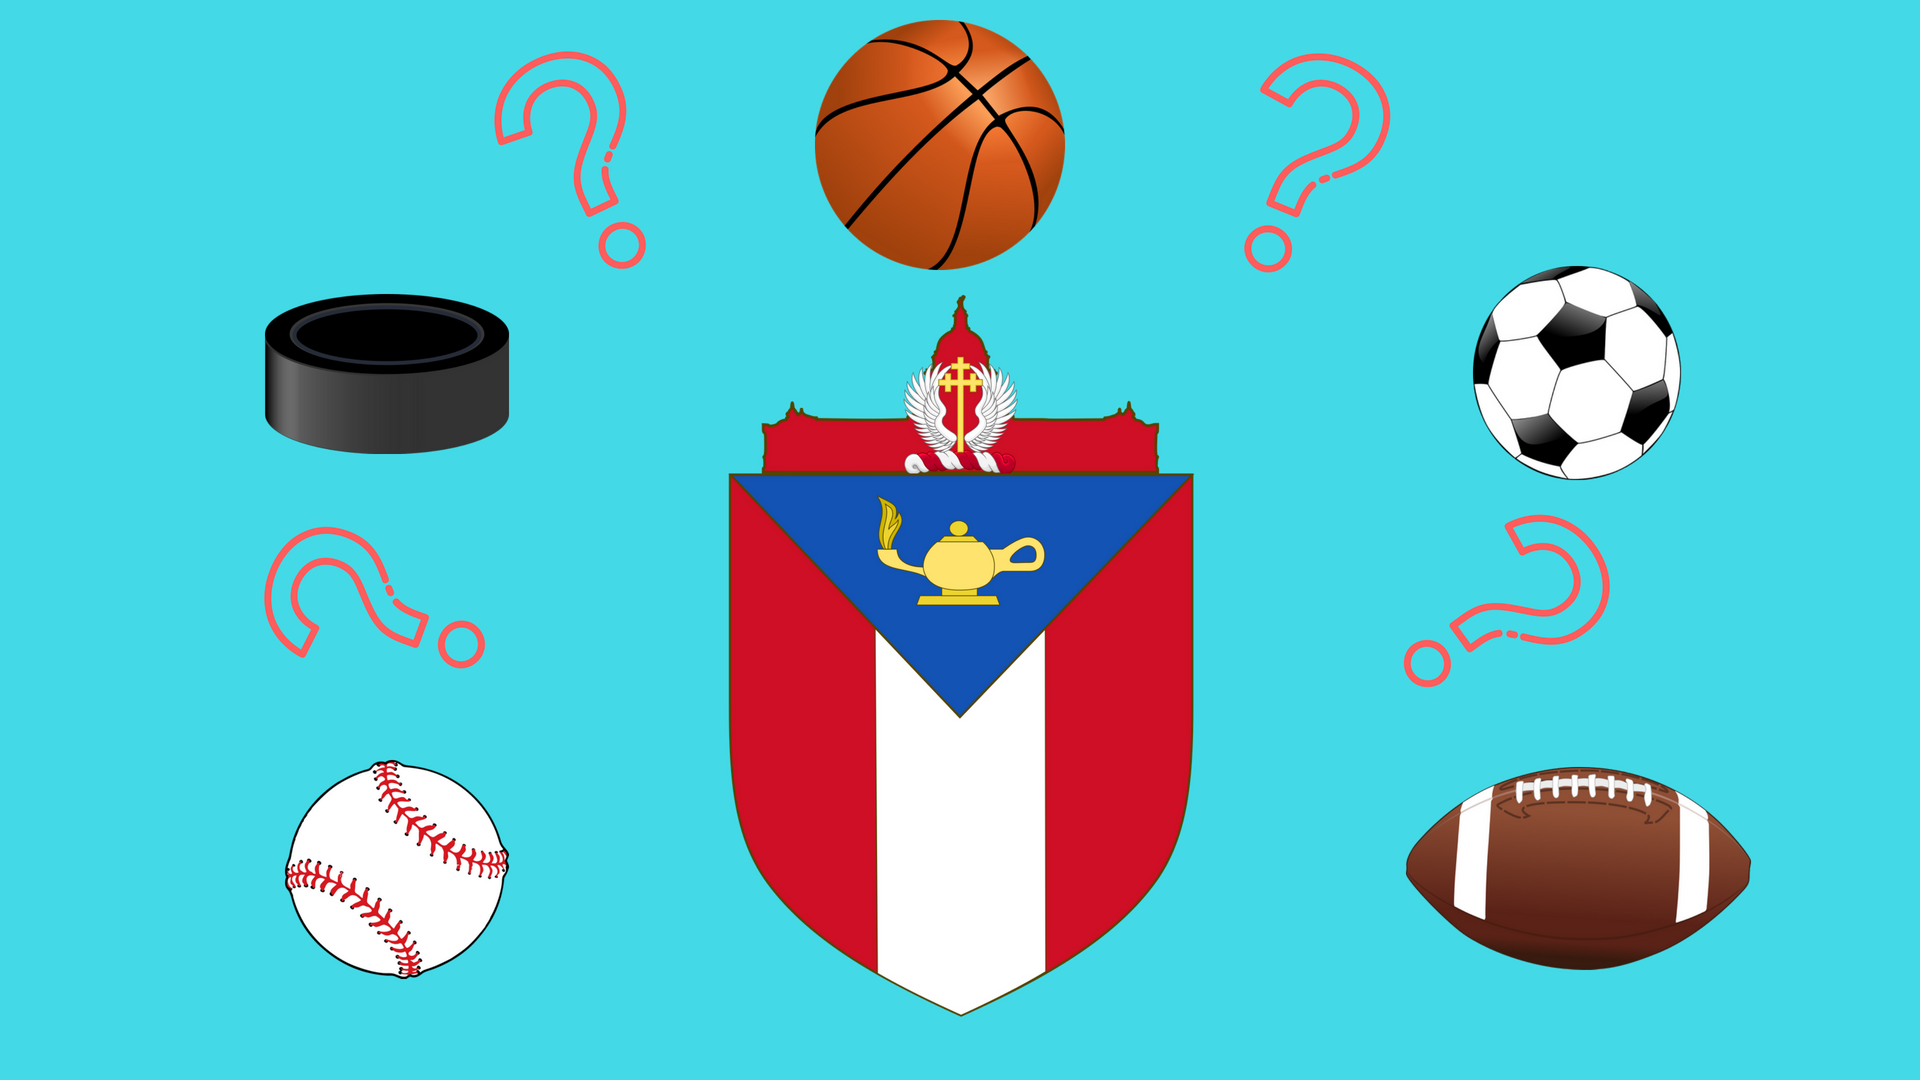 A image of the seal of Austin, Texas, surrounded by question marks and potential sports.